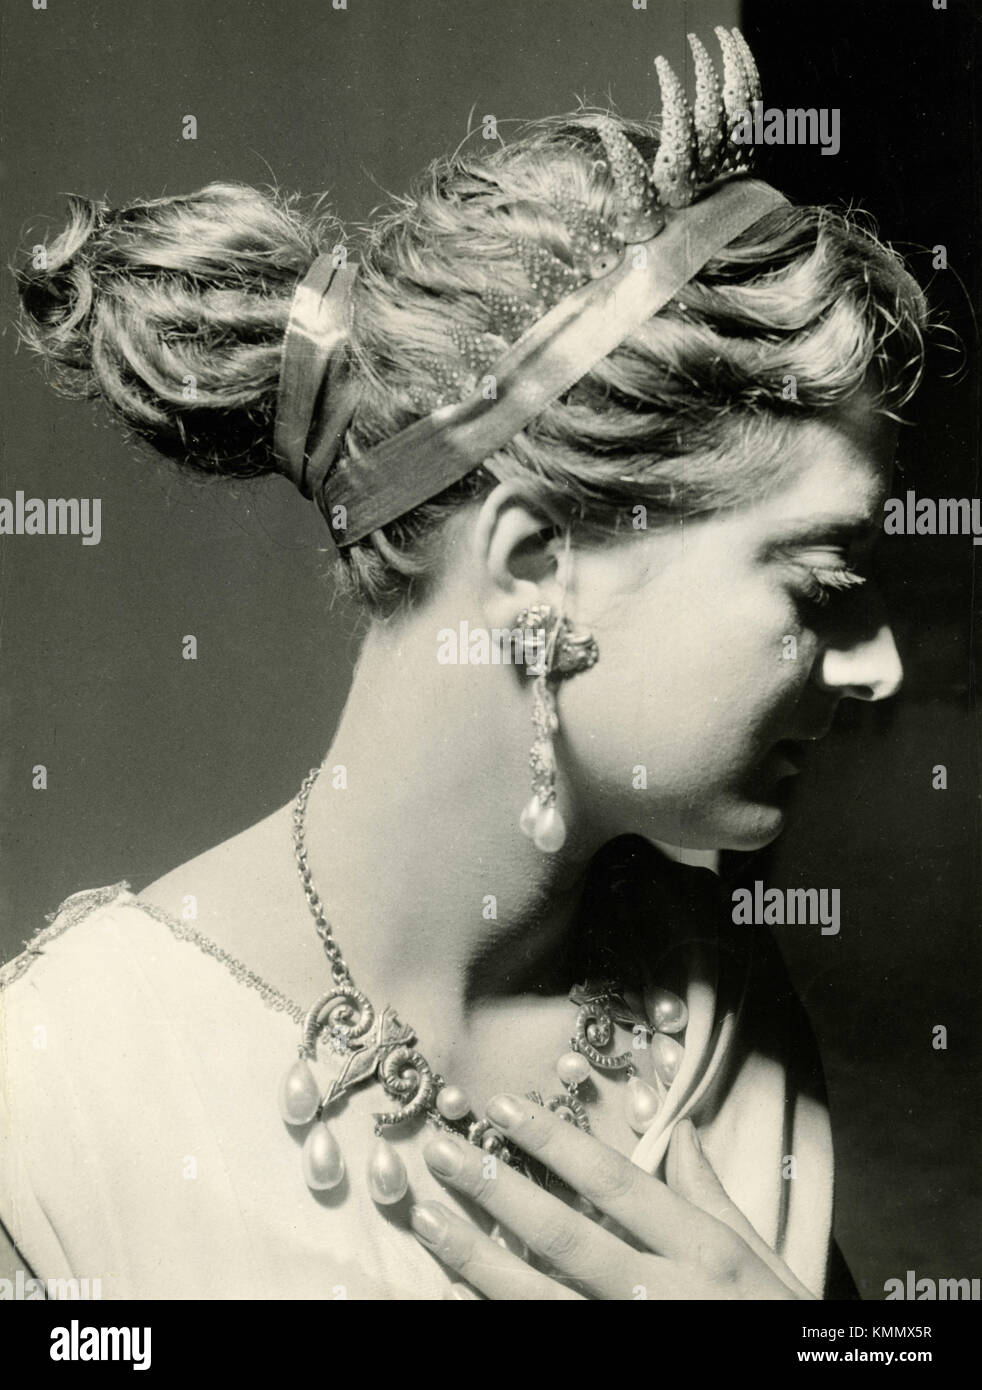 Model in toga at the hairdressing show, Italy 1960s - Stock Image